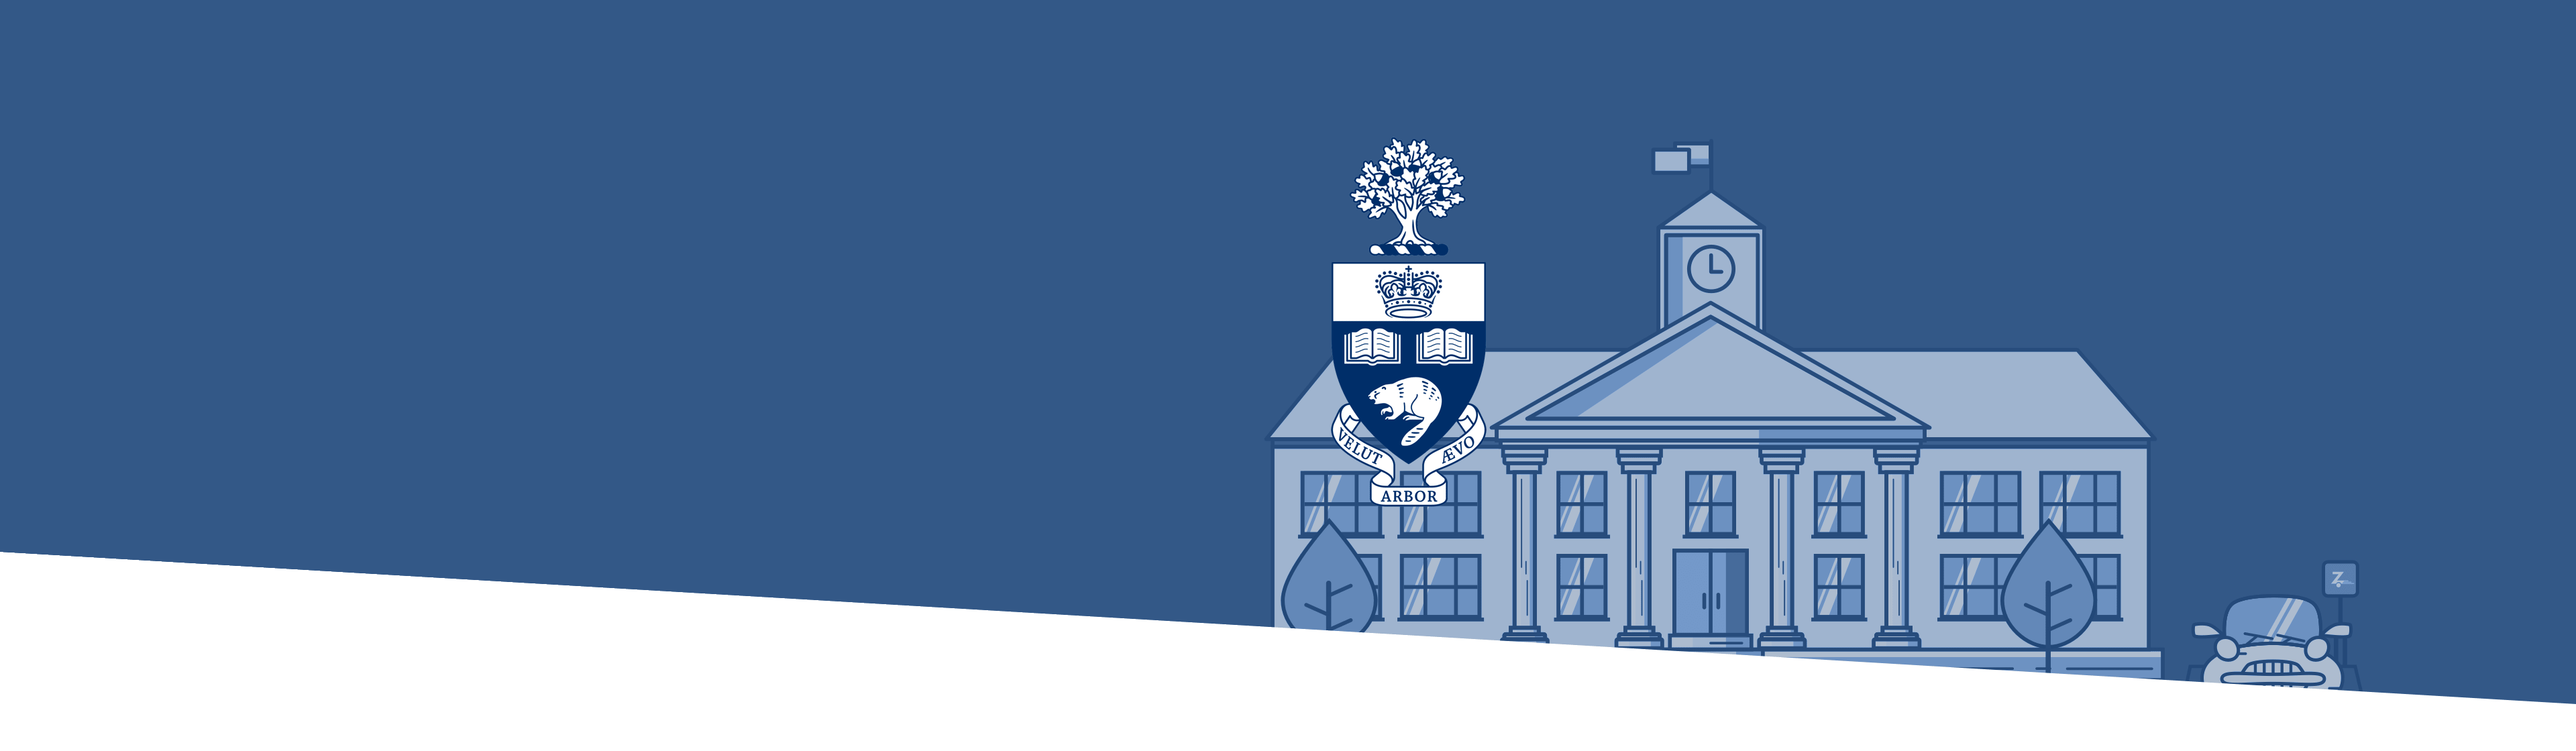 University of Toronto building and logo